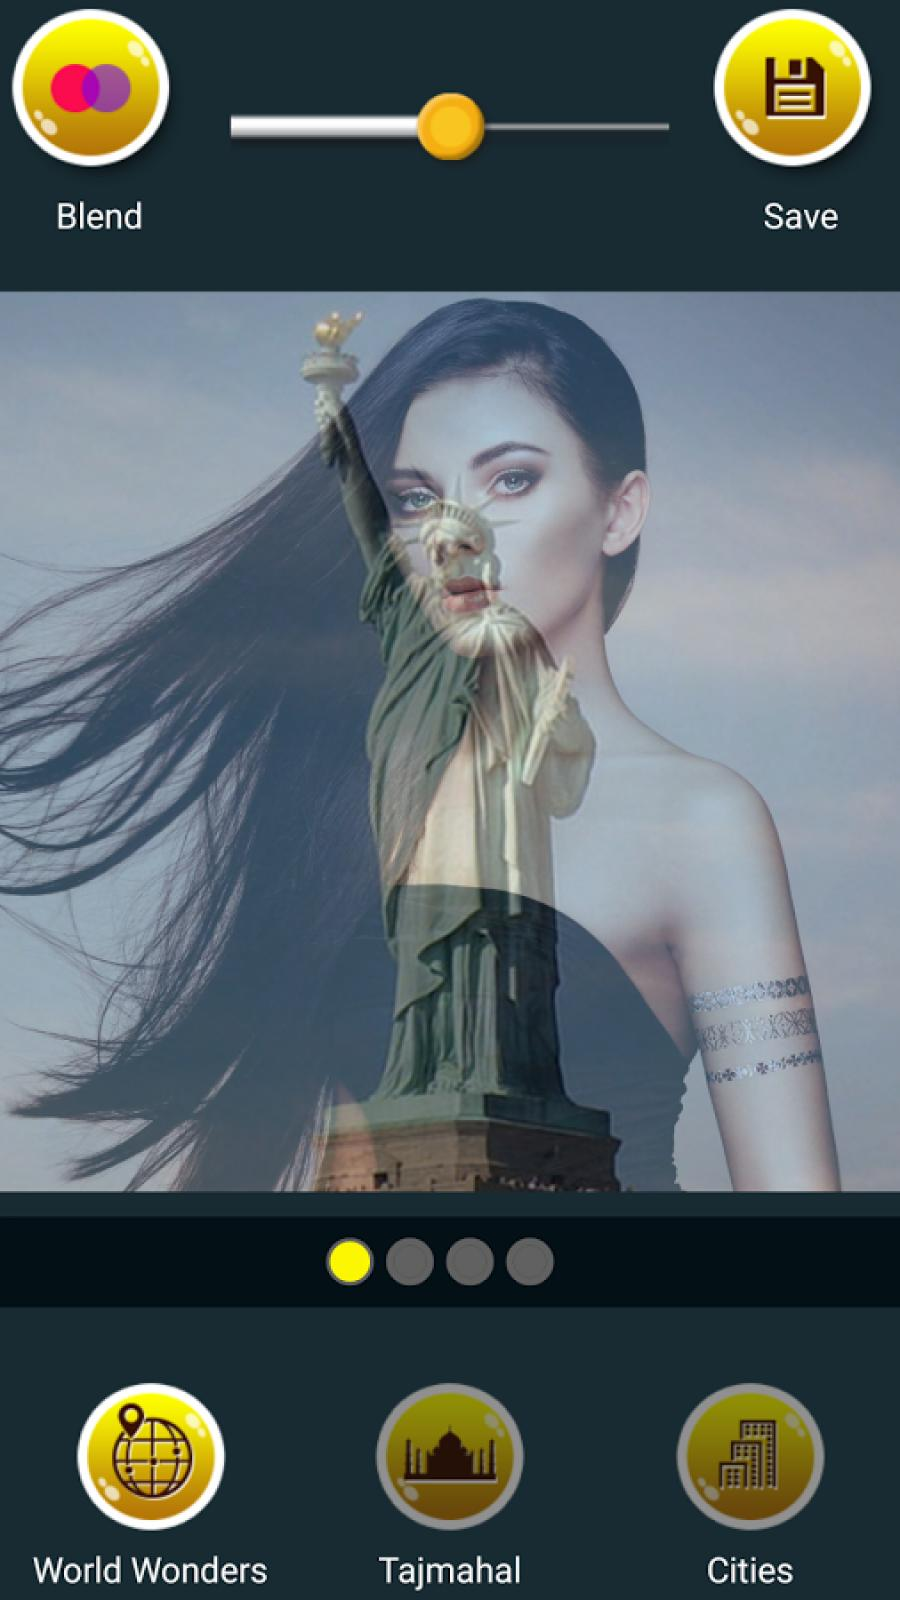 Best app to blend photos The 10 Best Photo Editing Apps For iPhone (2018)